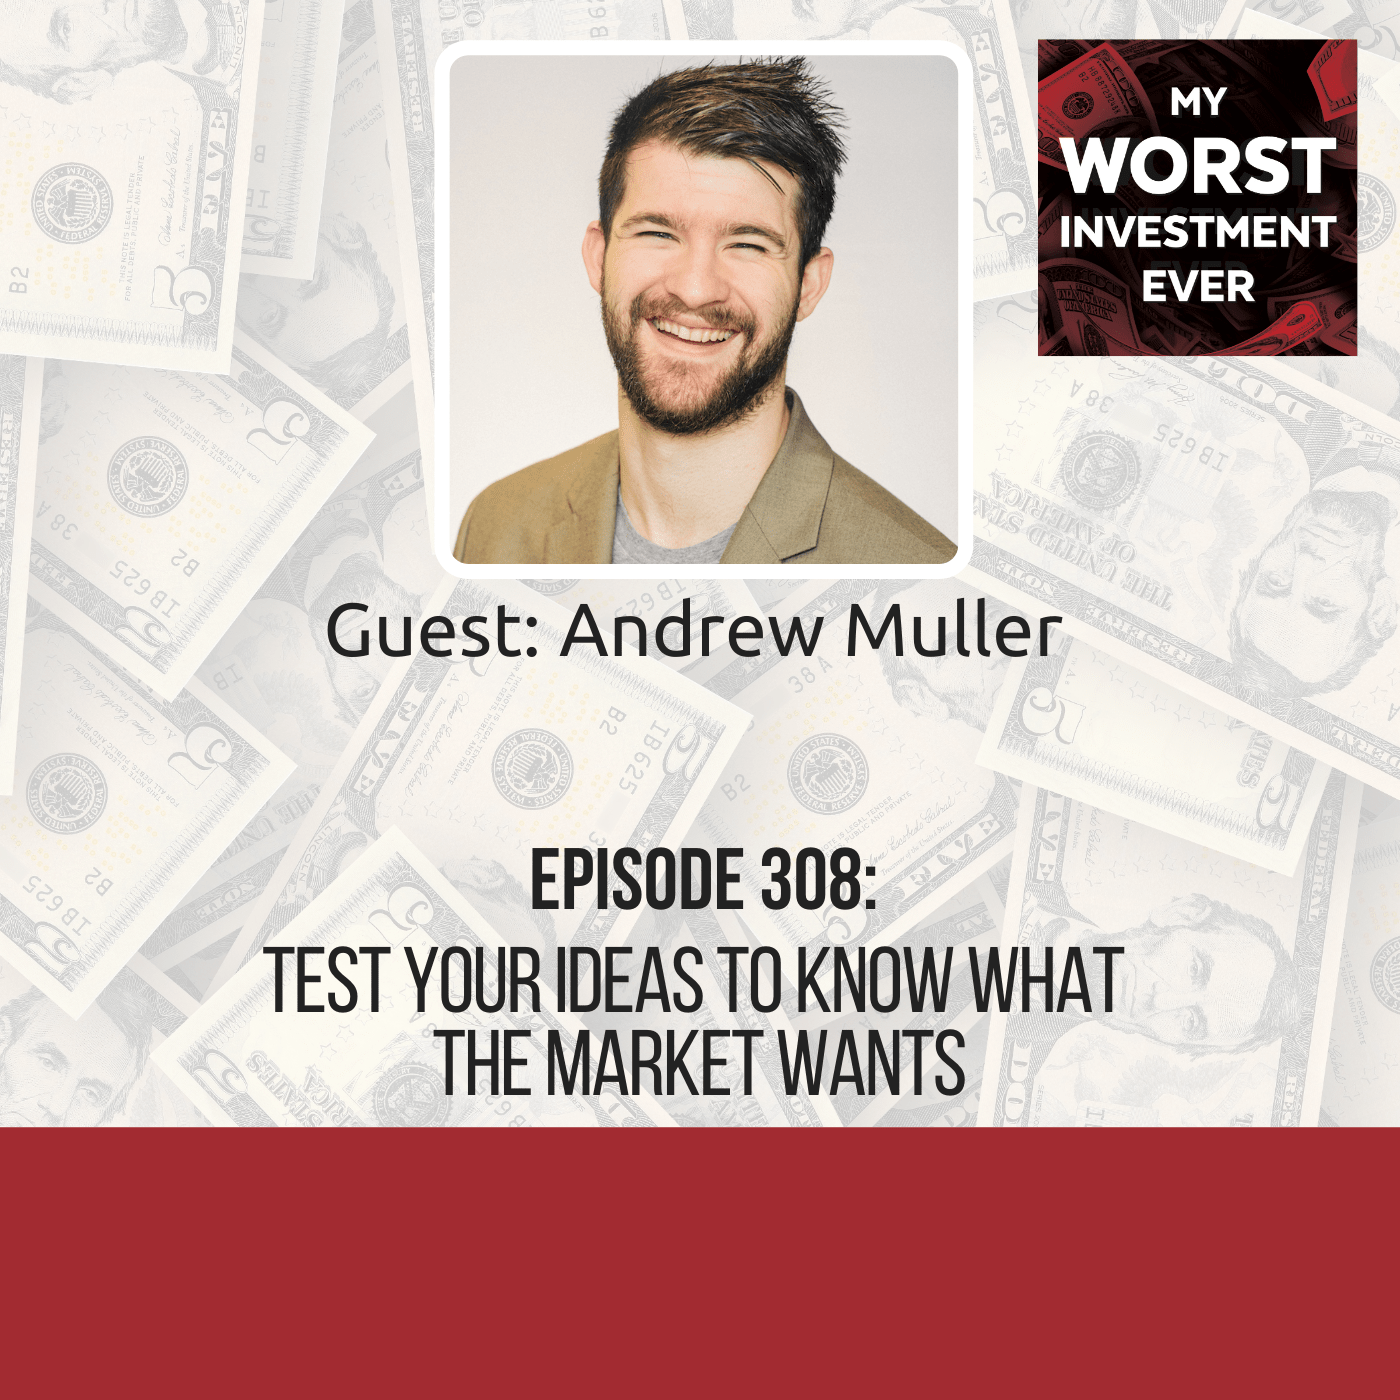 Andrew Muller – Test Your Ideas to Know What the Market Wants